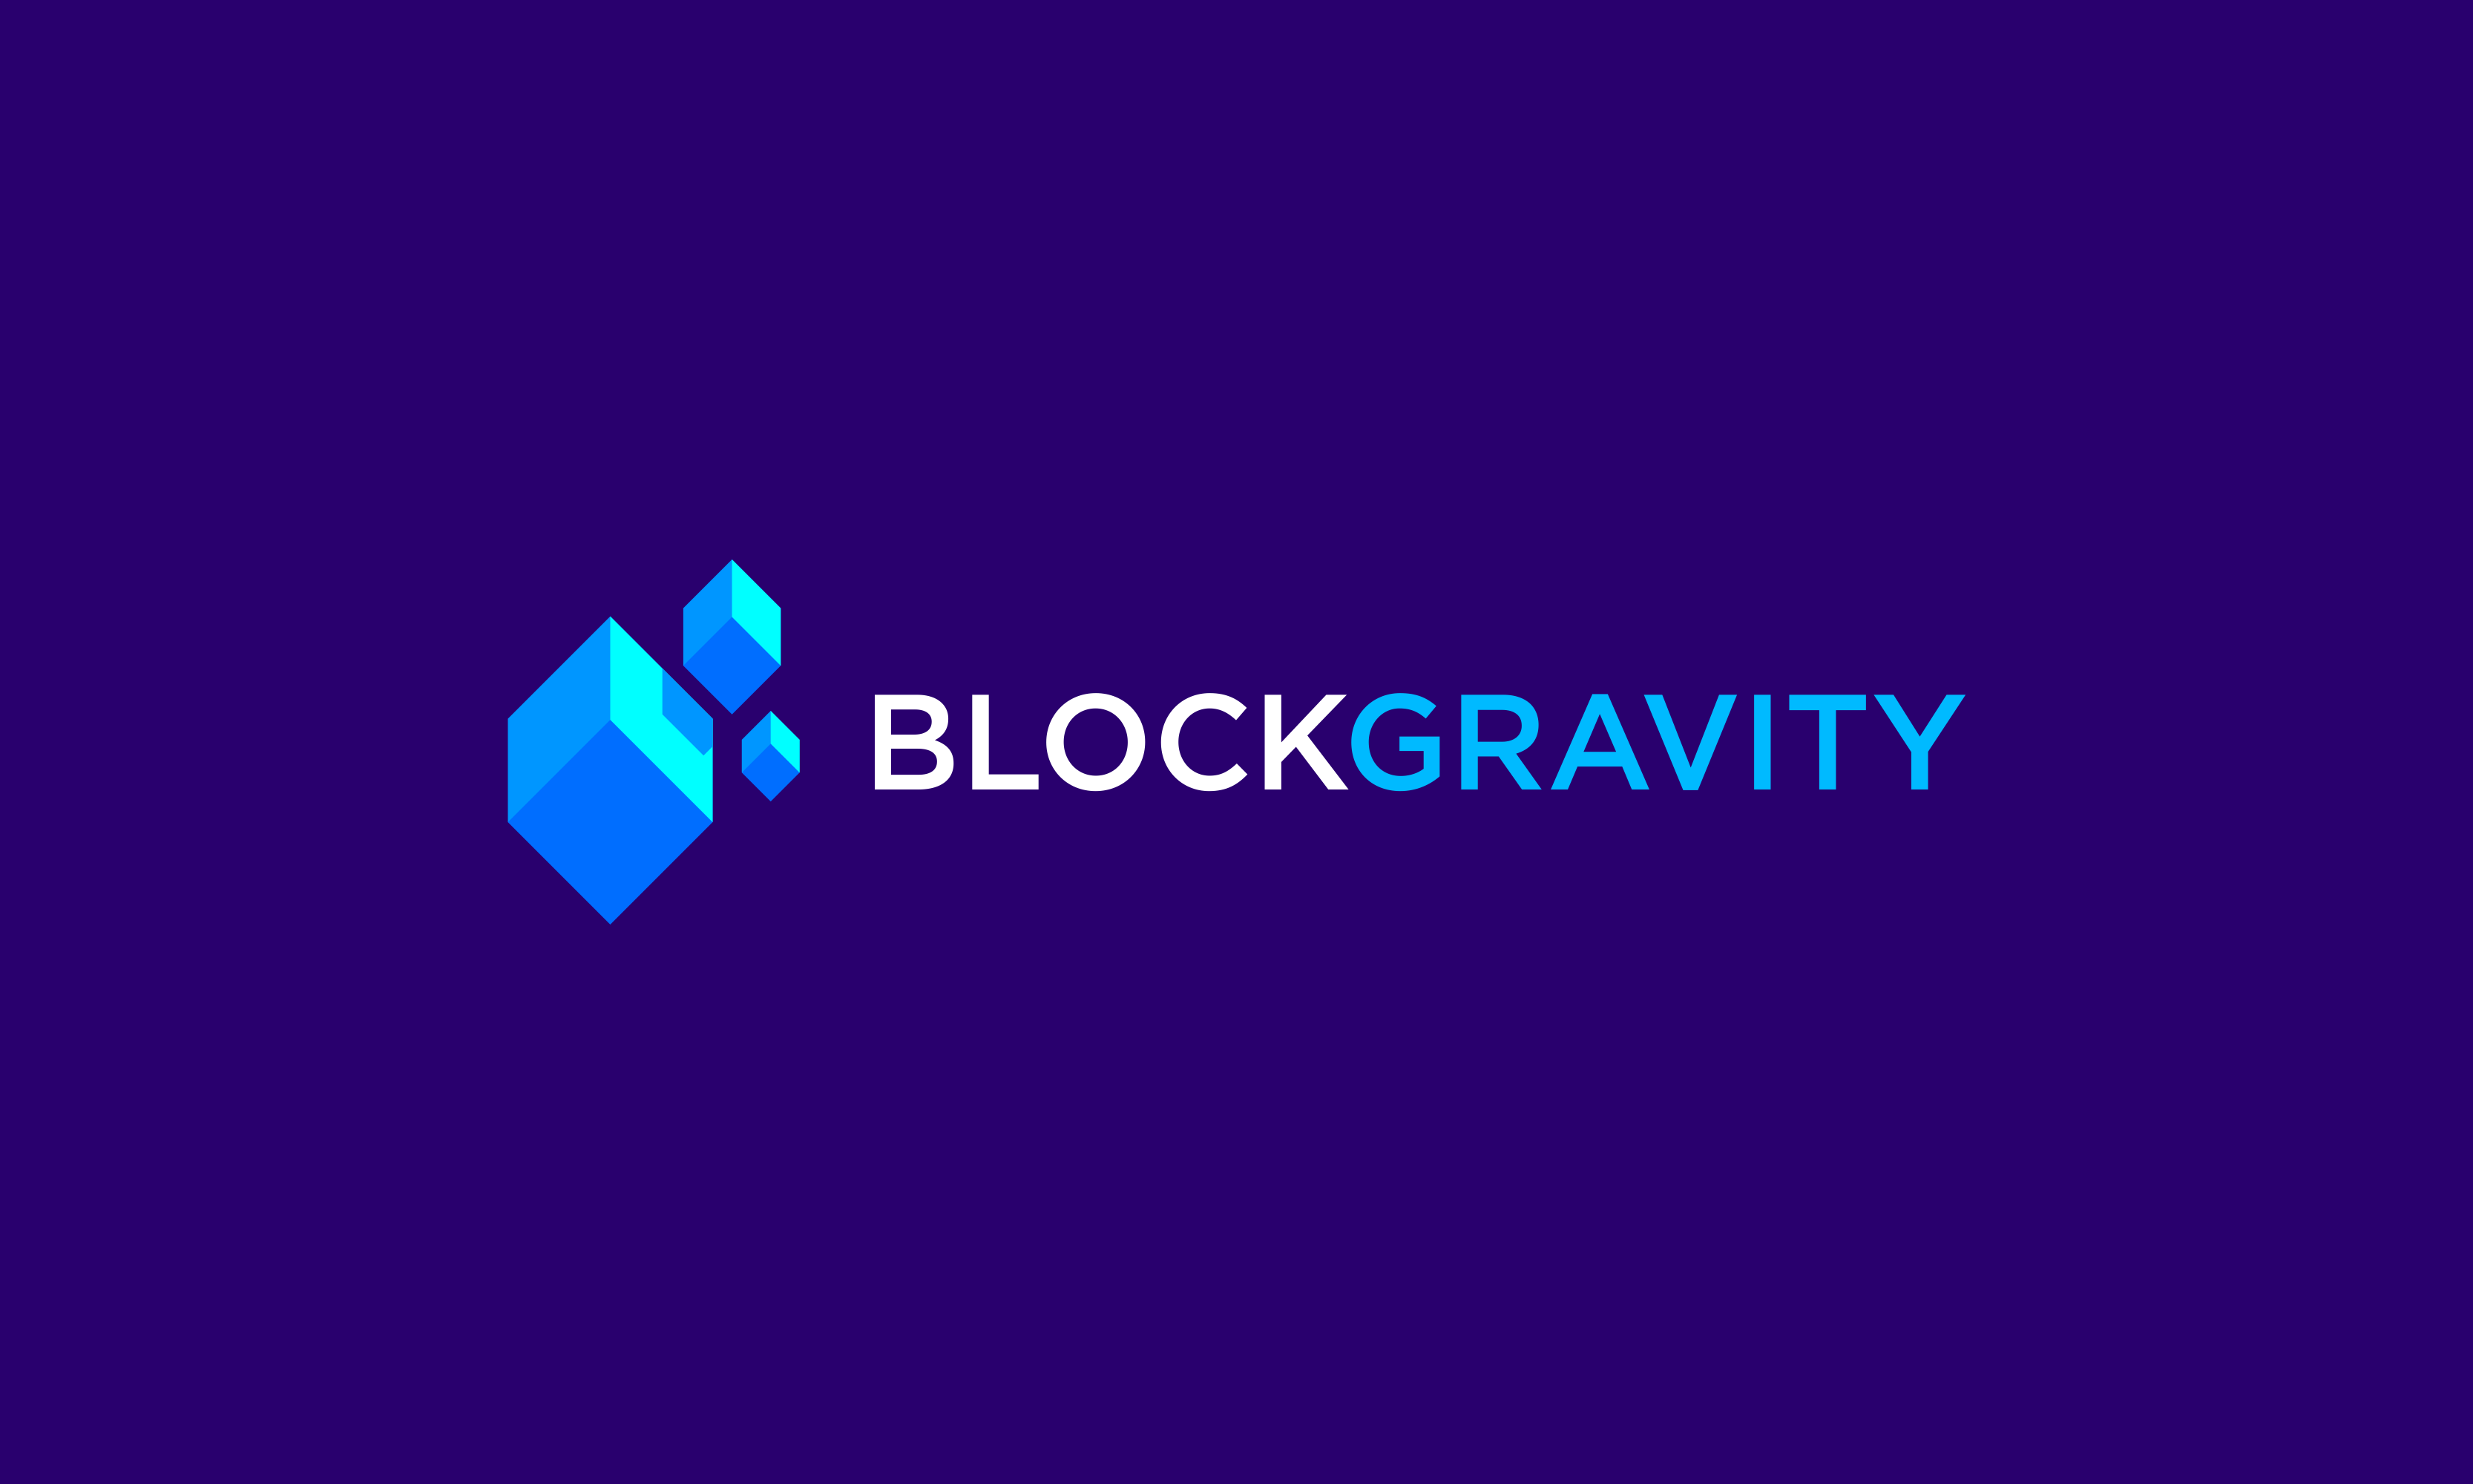 Blockgravity